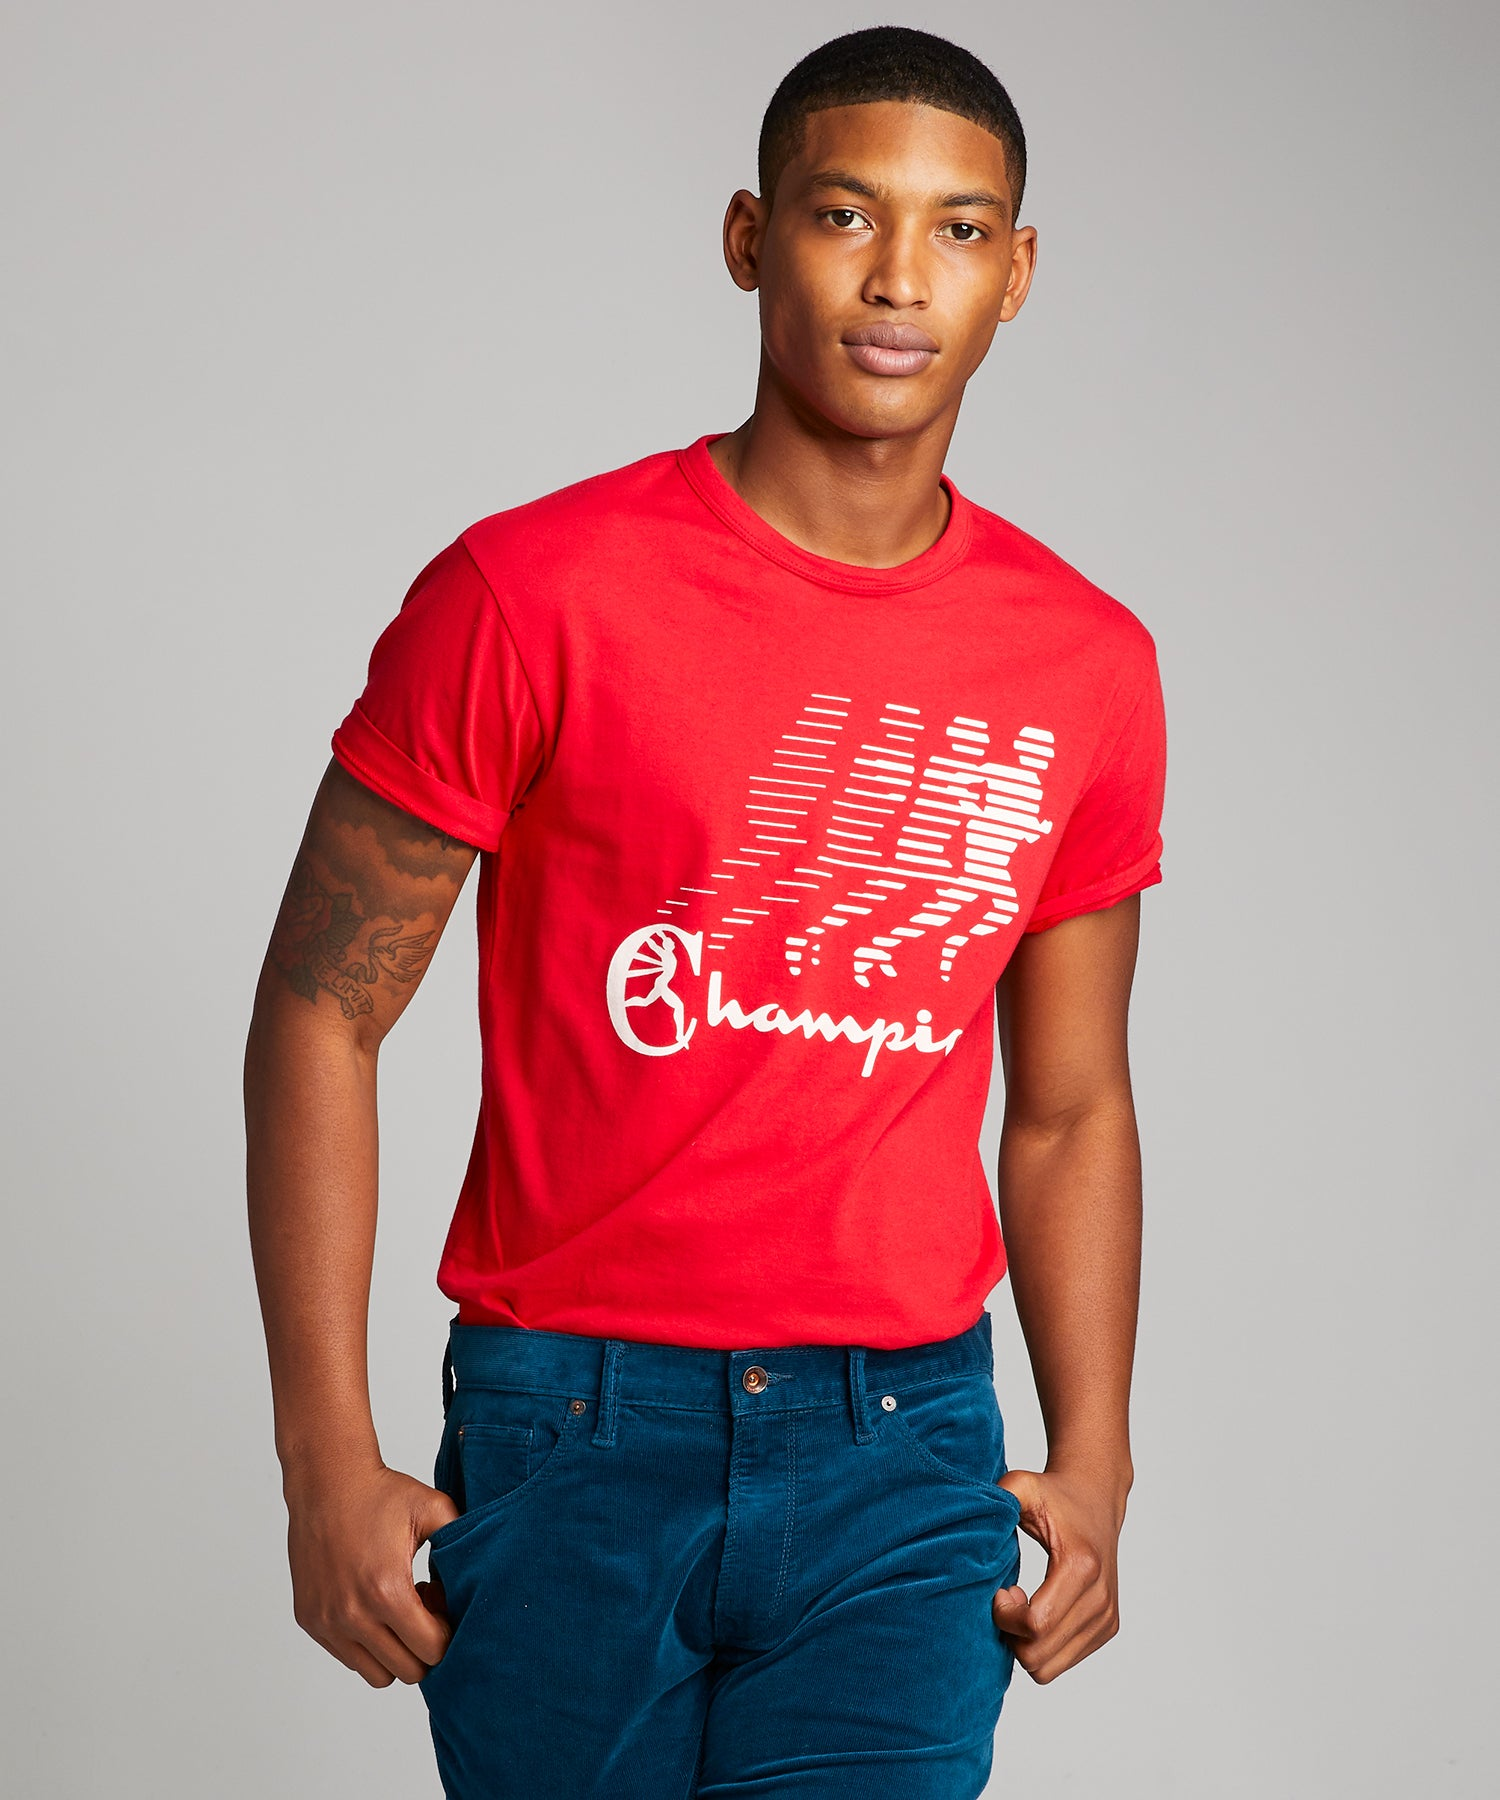 Running Man Champion Graphic Tee in Red